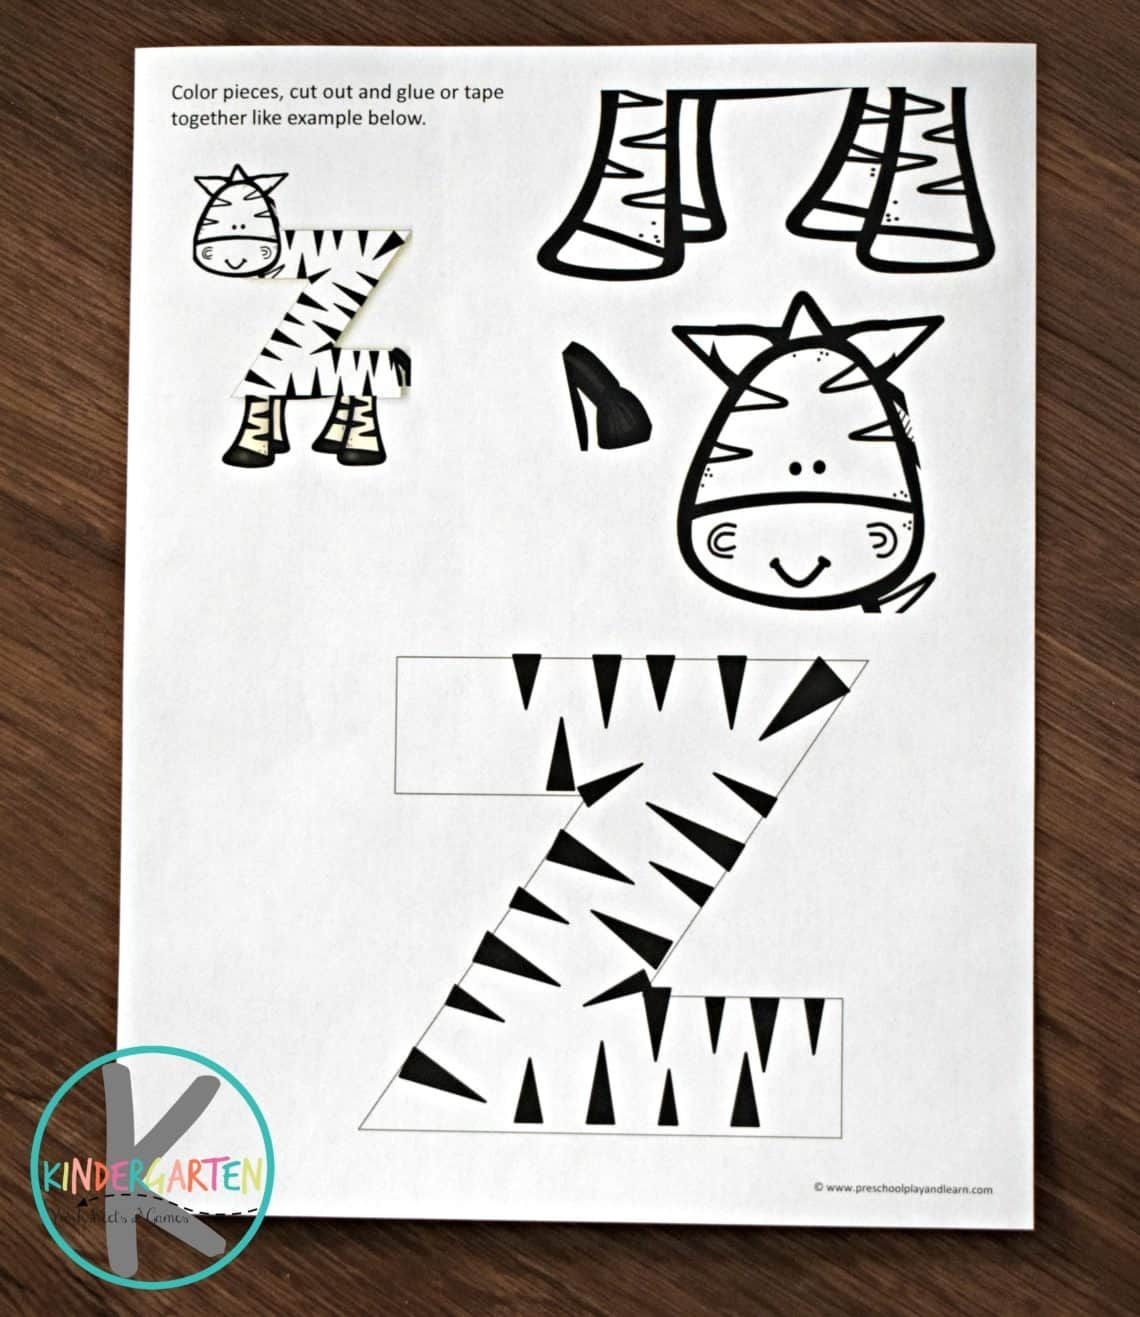 Free Printable Letter Z Craft Of A Zebra Perfect